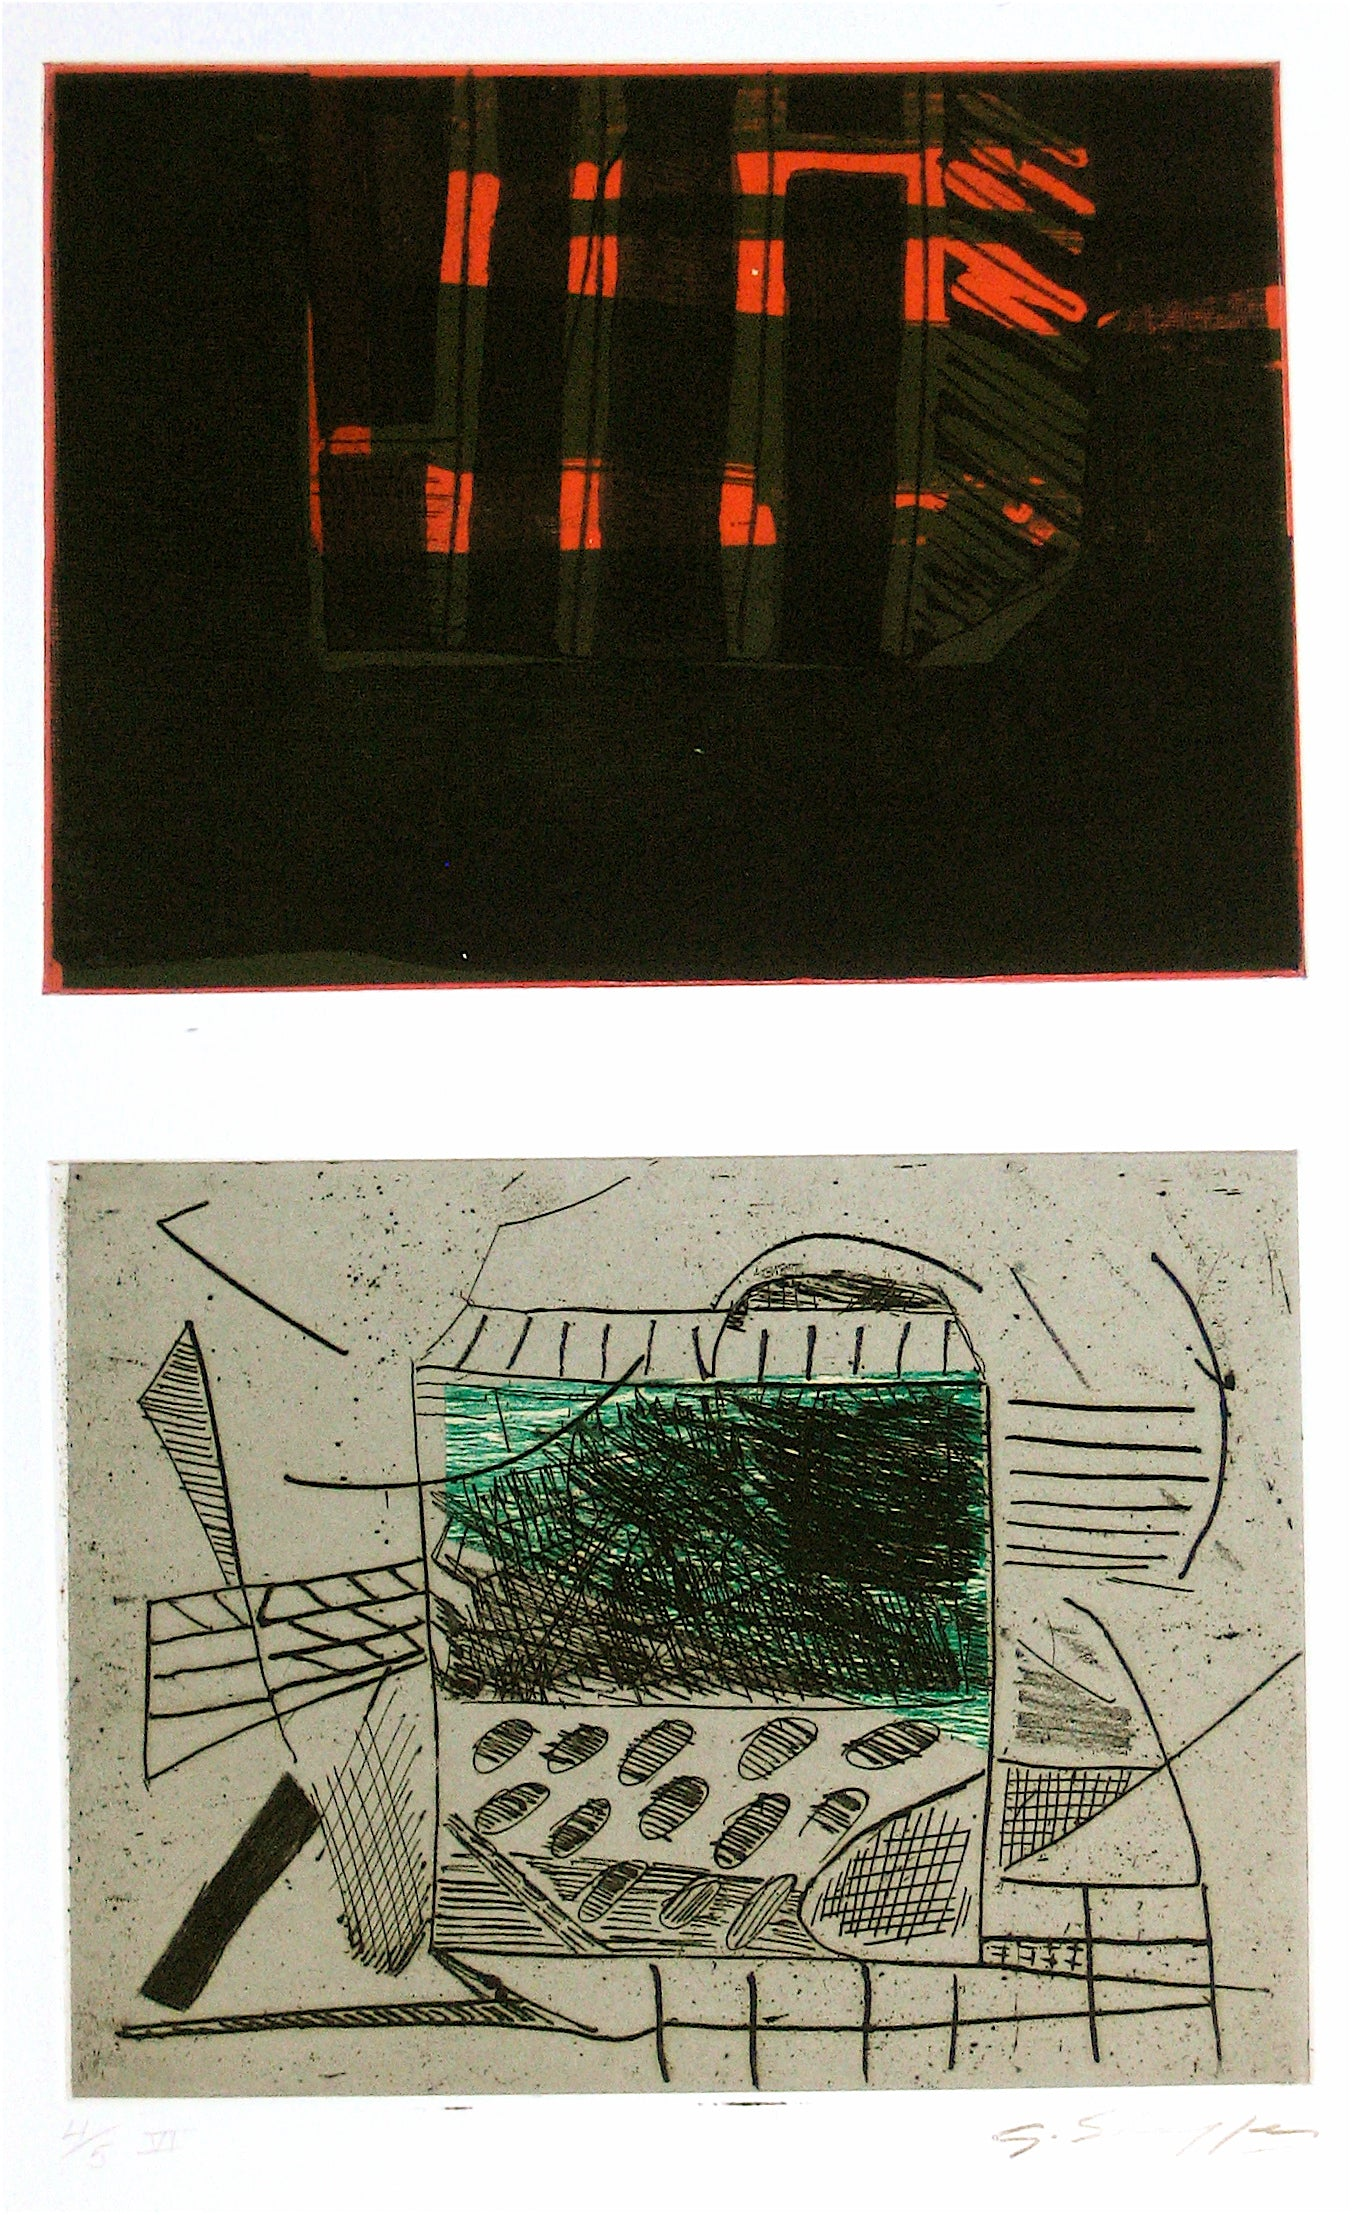 Abstracted Duel Image <br>1989 Litho & Chine Colle <br><br>#11780